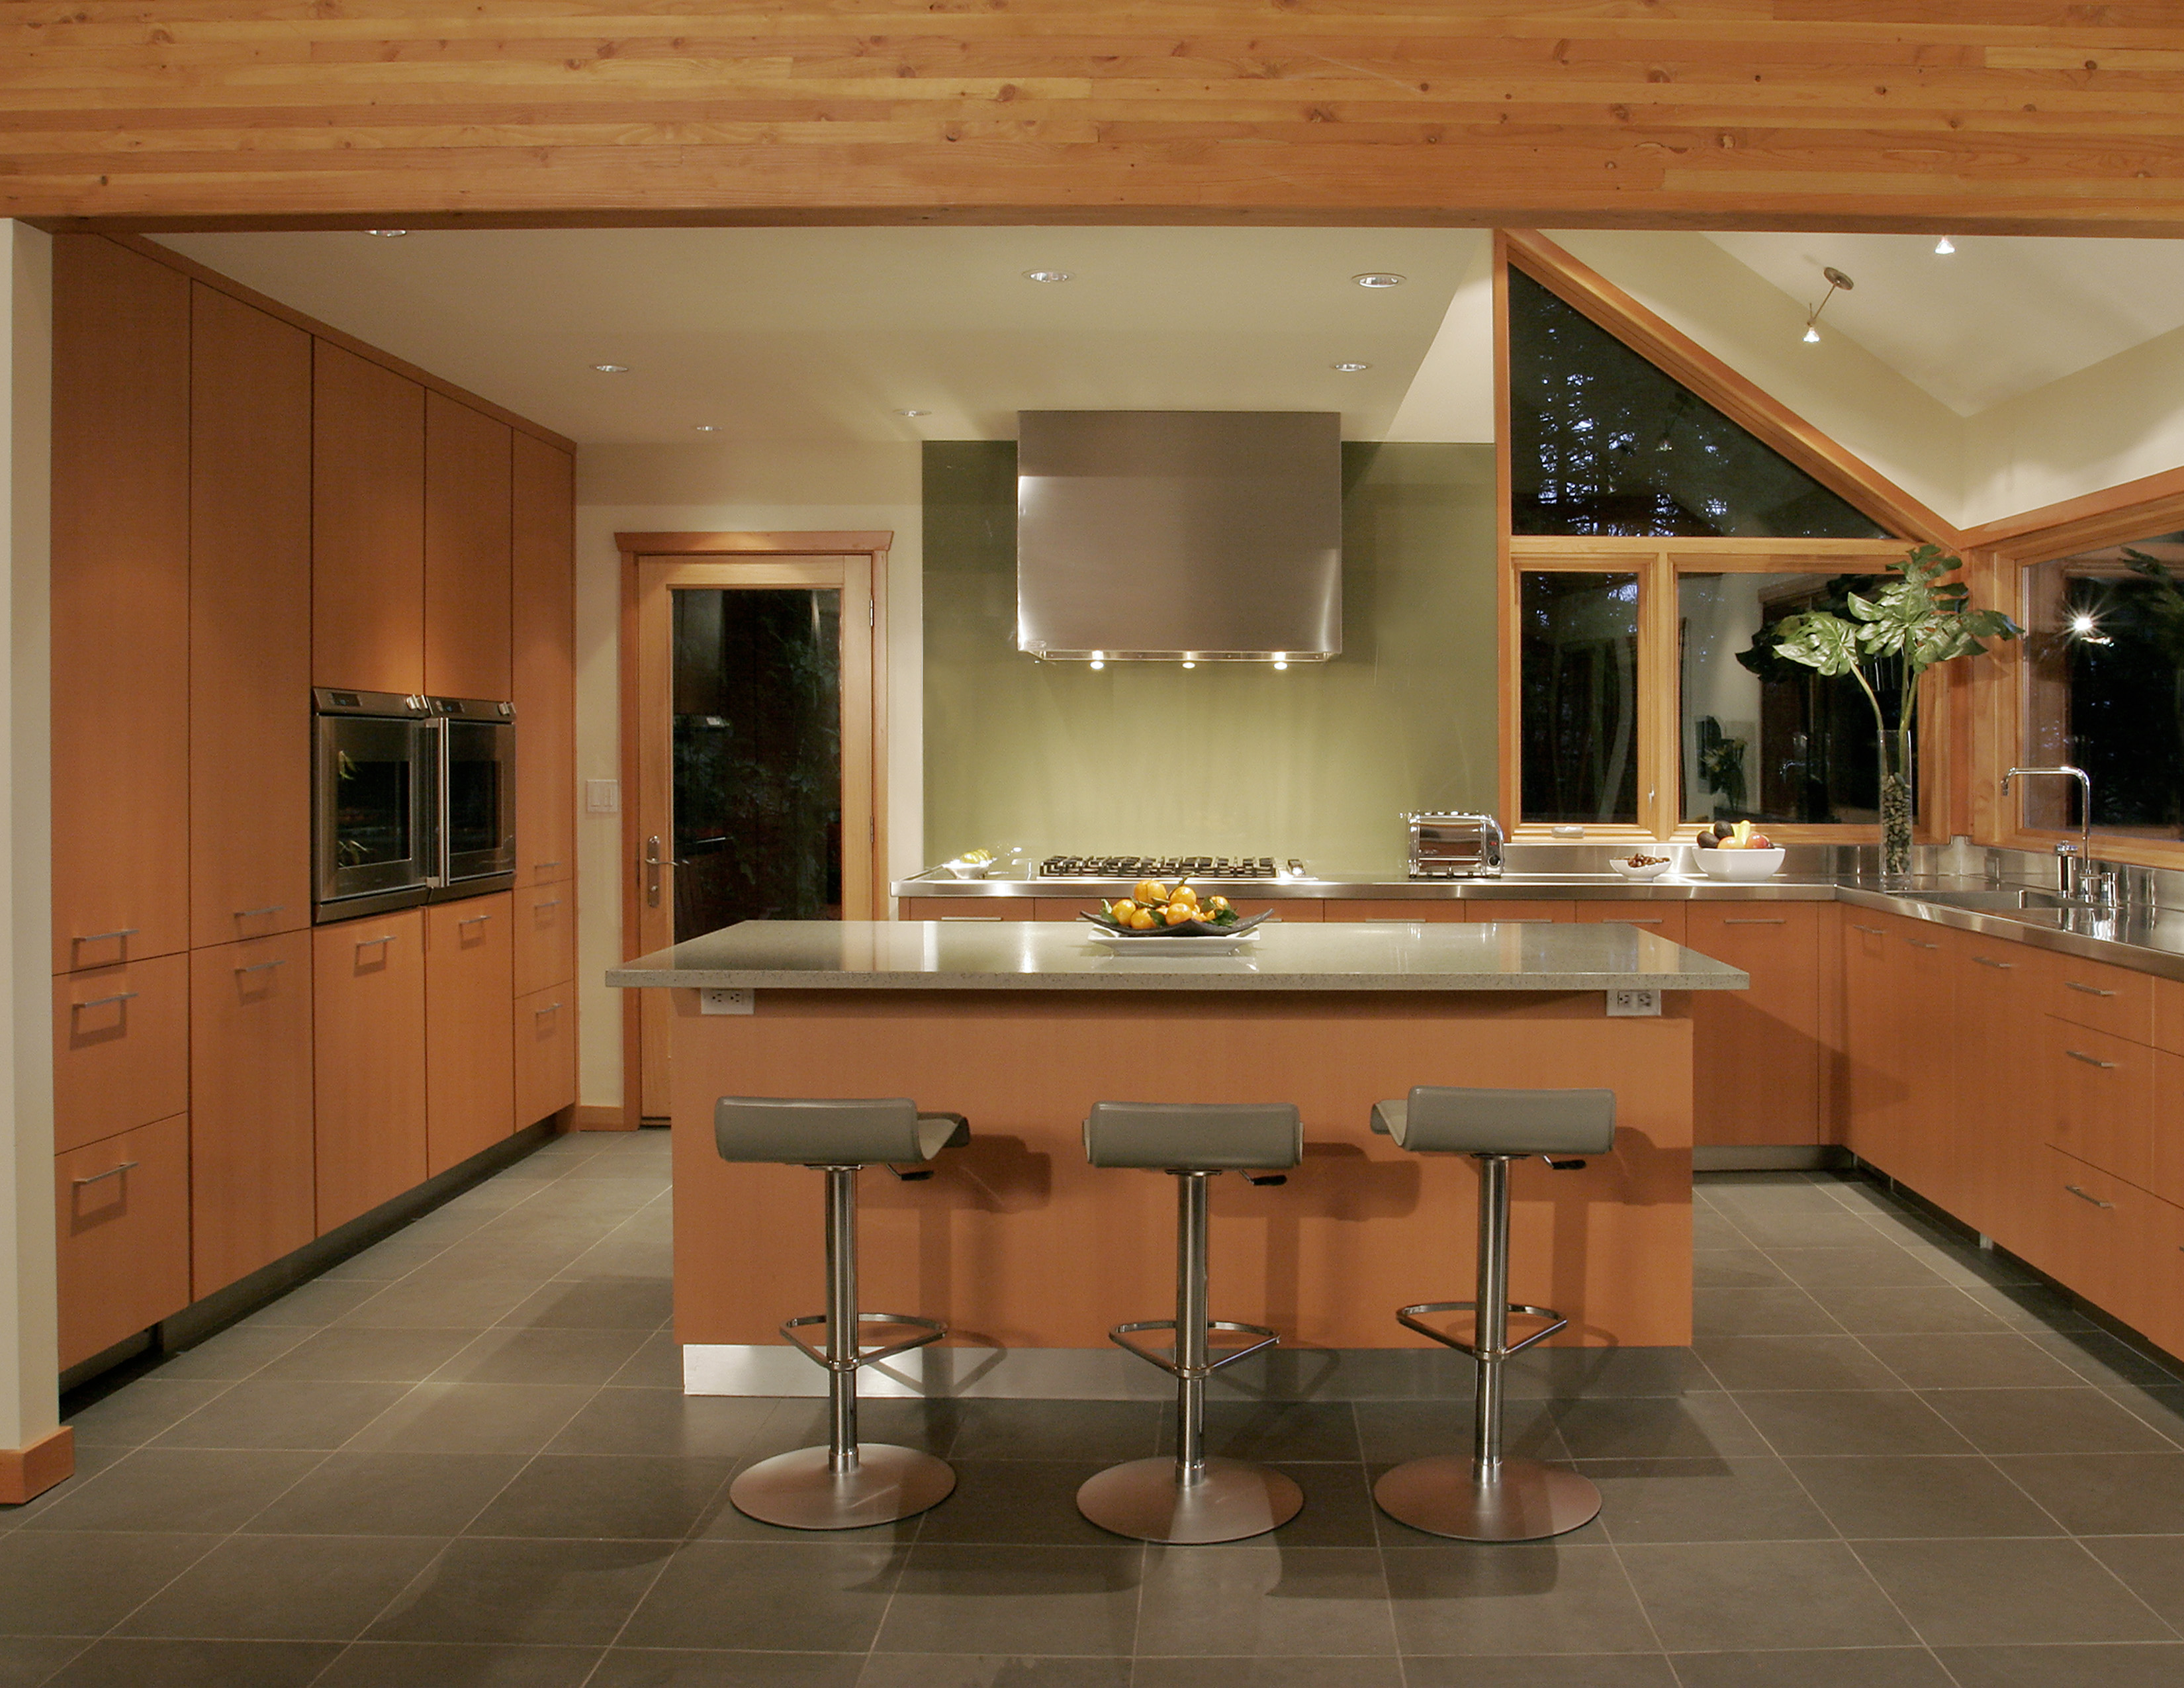 A newly remodeled kitchen with aspects of biophilic design inspired by nature